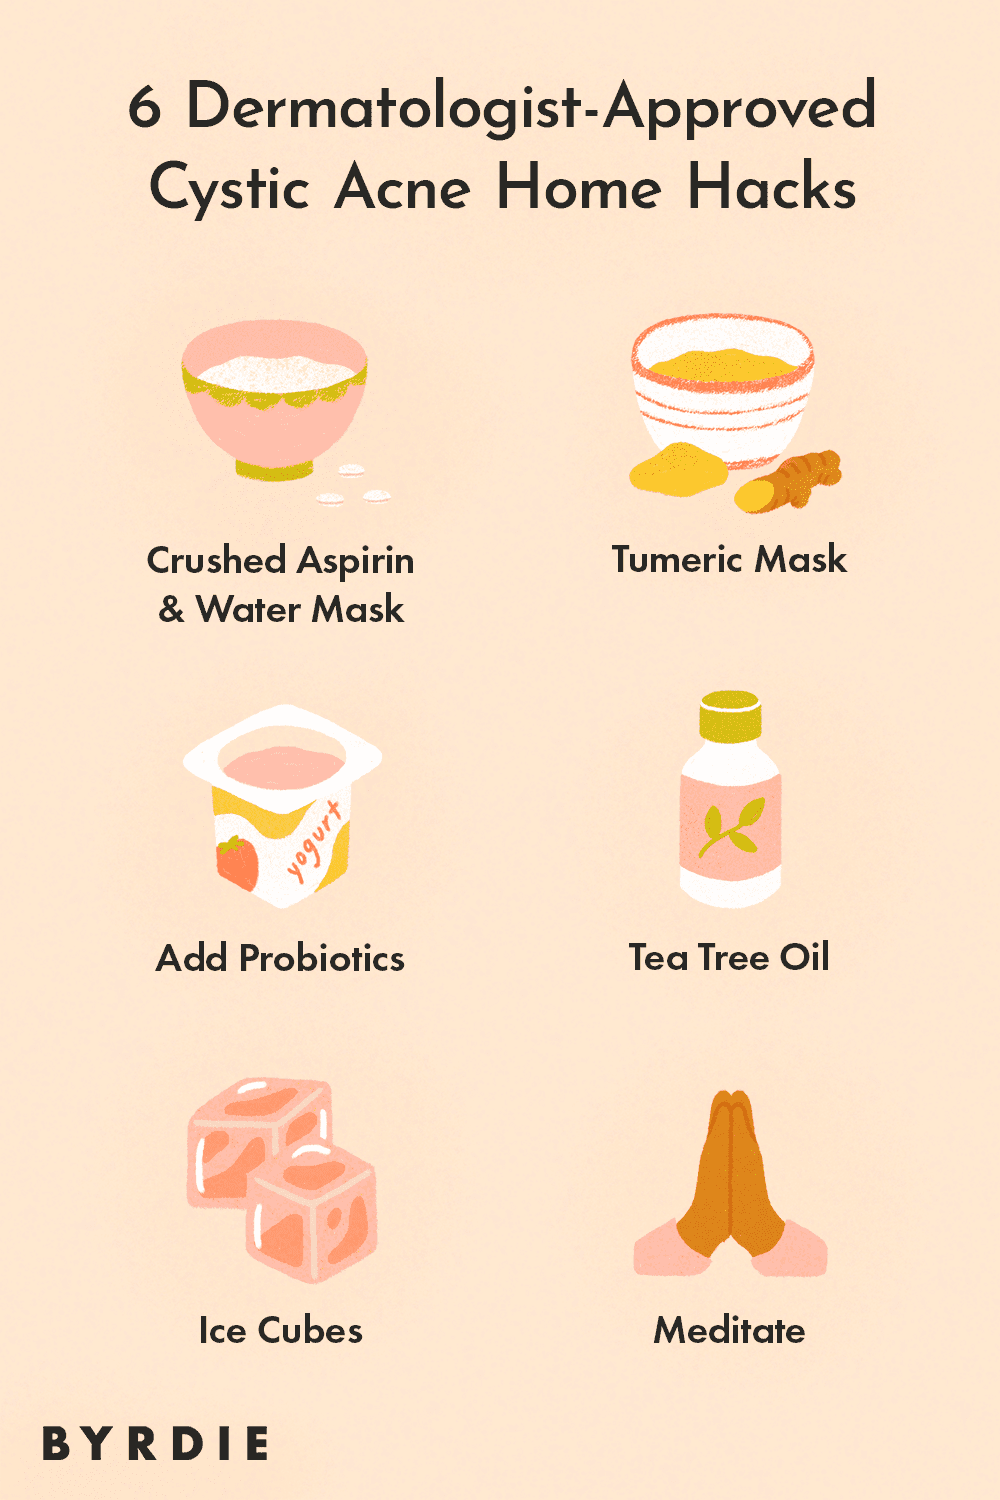 11 Cystic Acne Home Remedies That Are Esthetician And